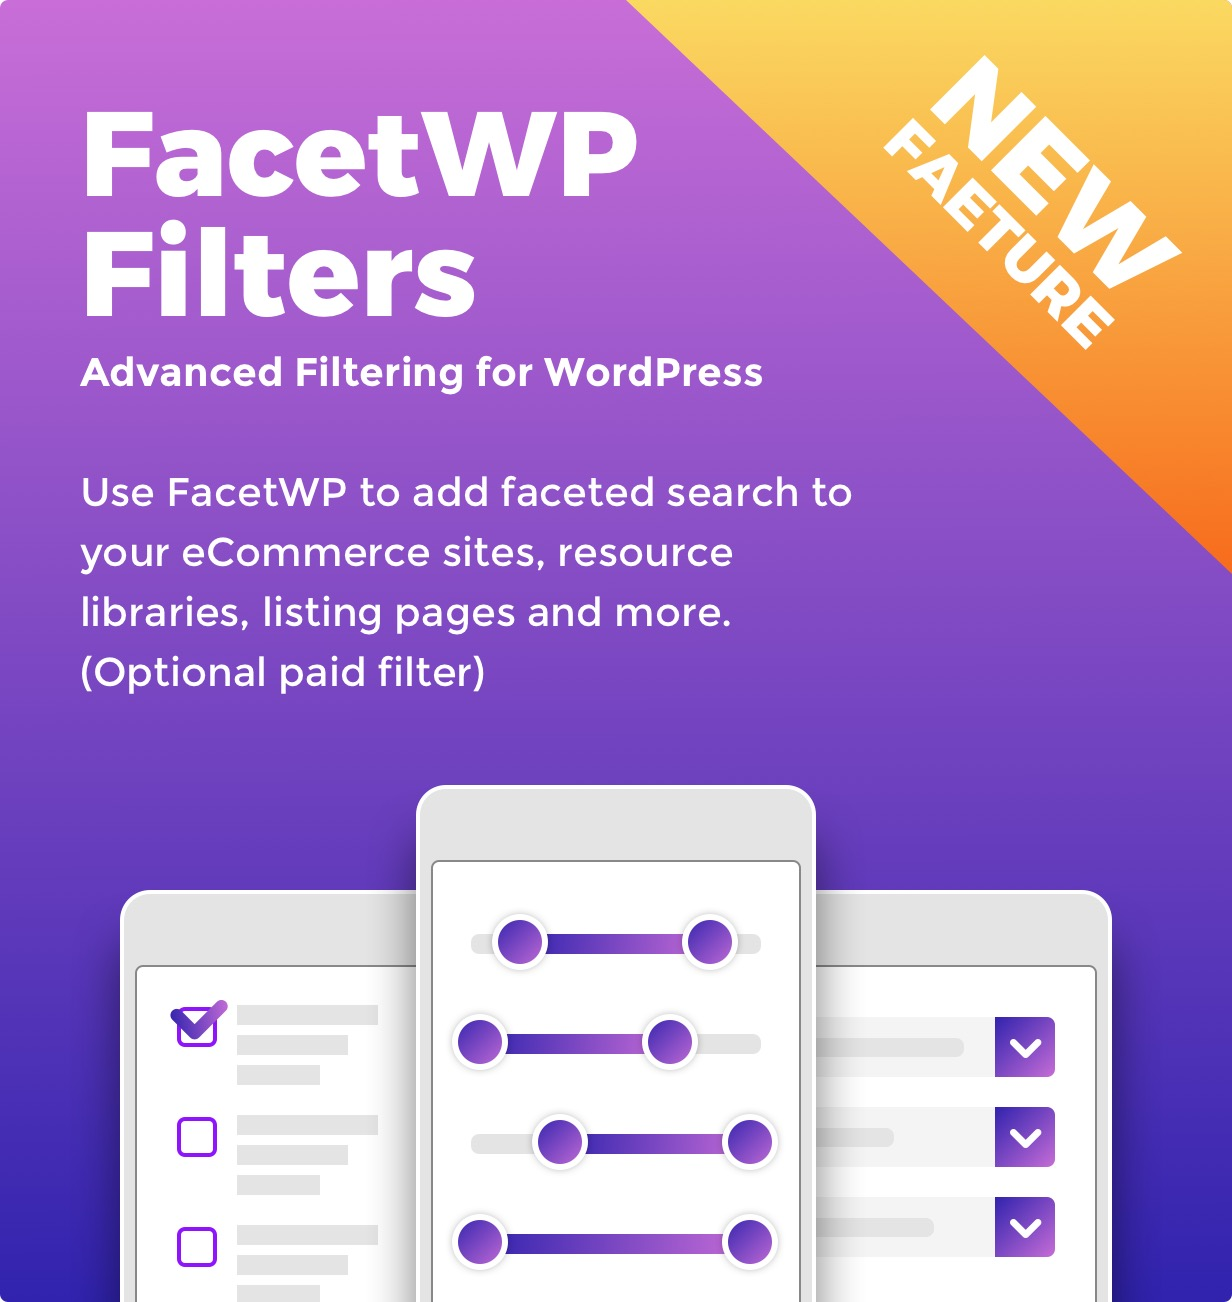 FacetWP Filters